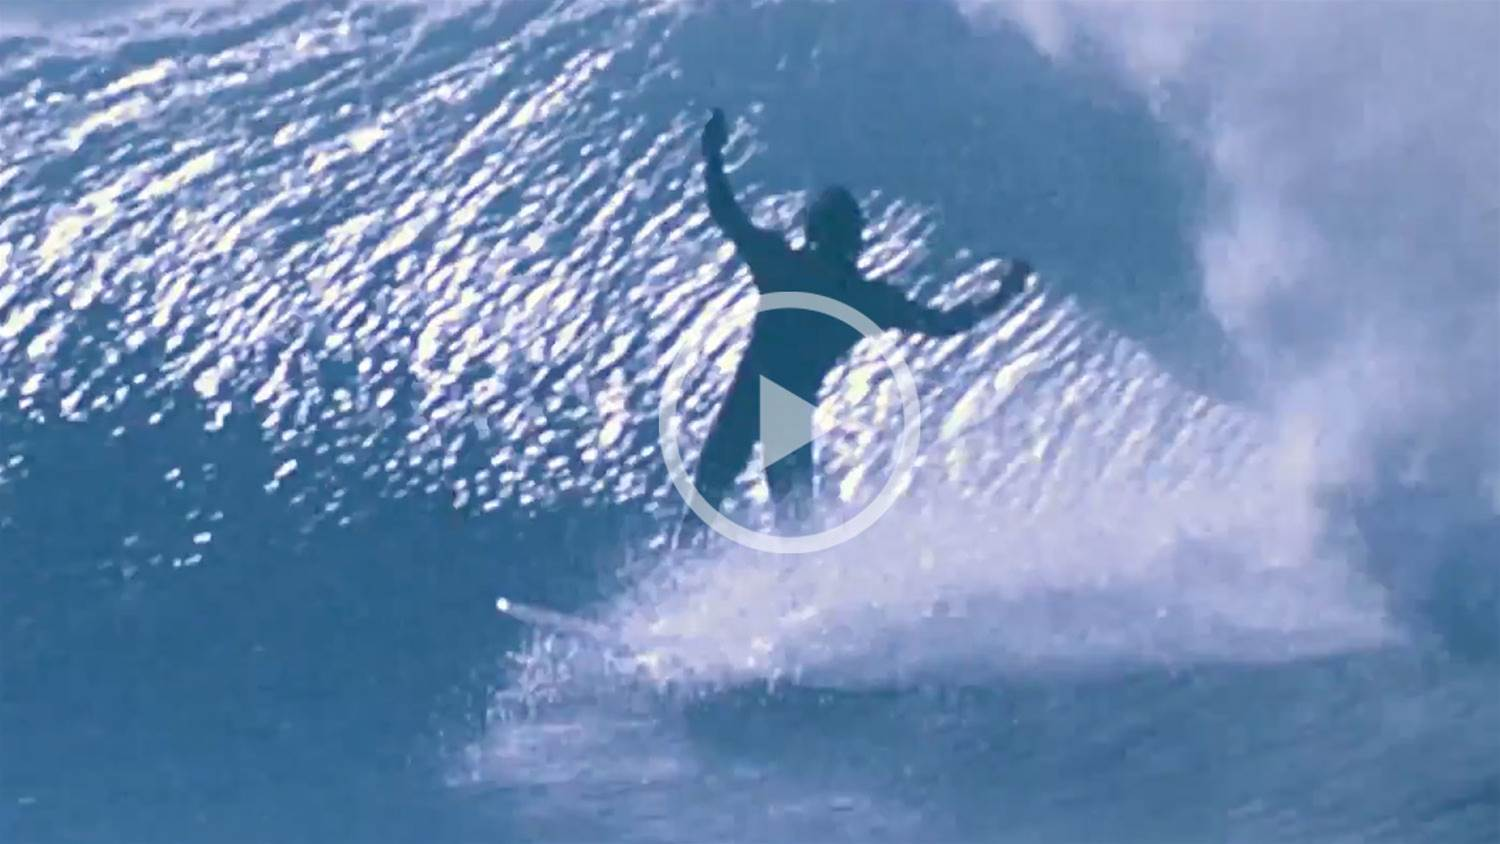 More Unseen Dick Hoole Gold - Classic J-Bay